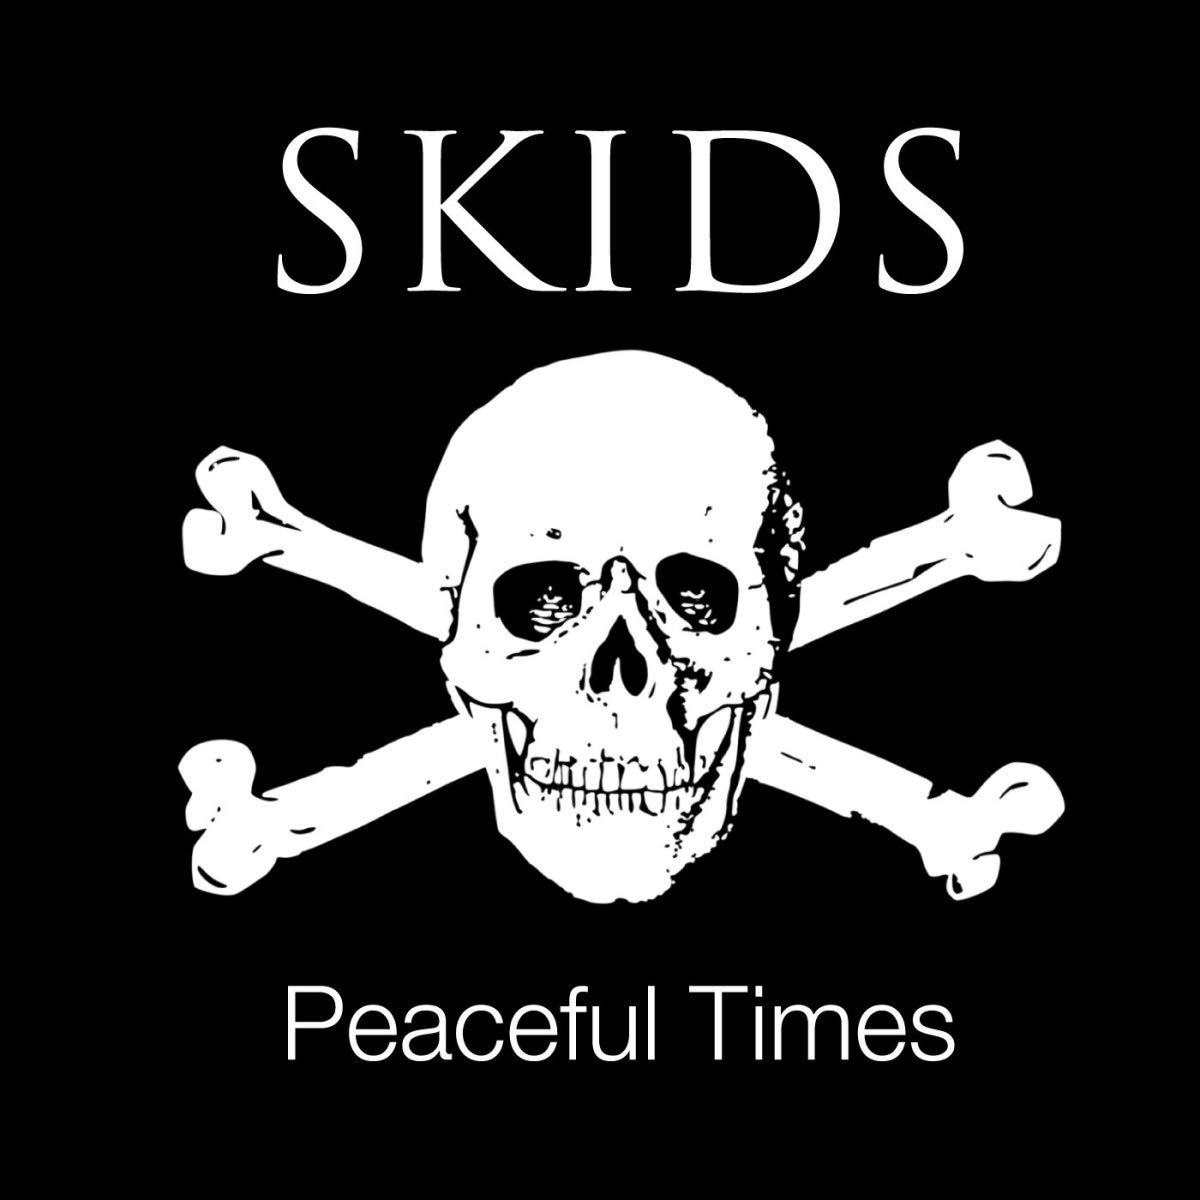 Skids - Peaceful Times (2019) [FLAC] Download